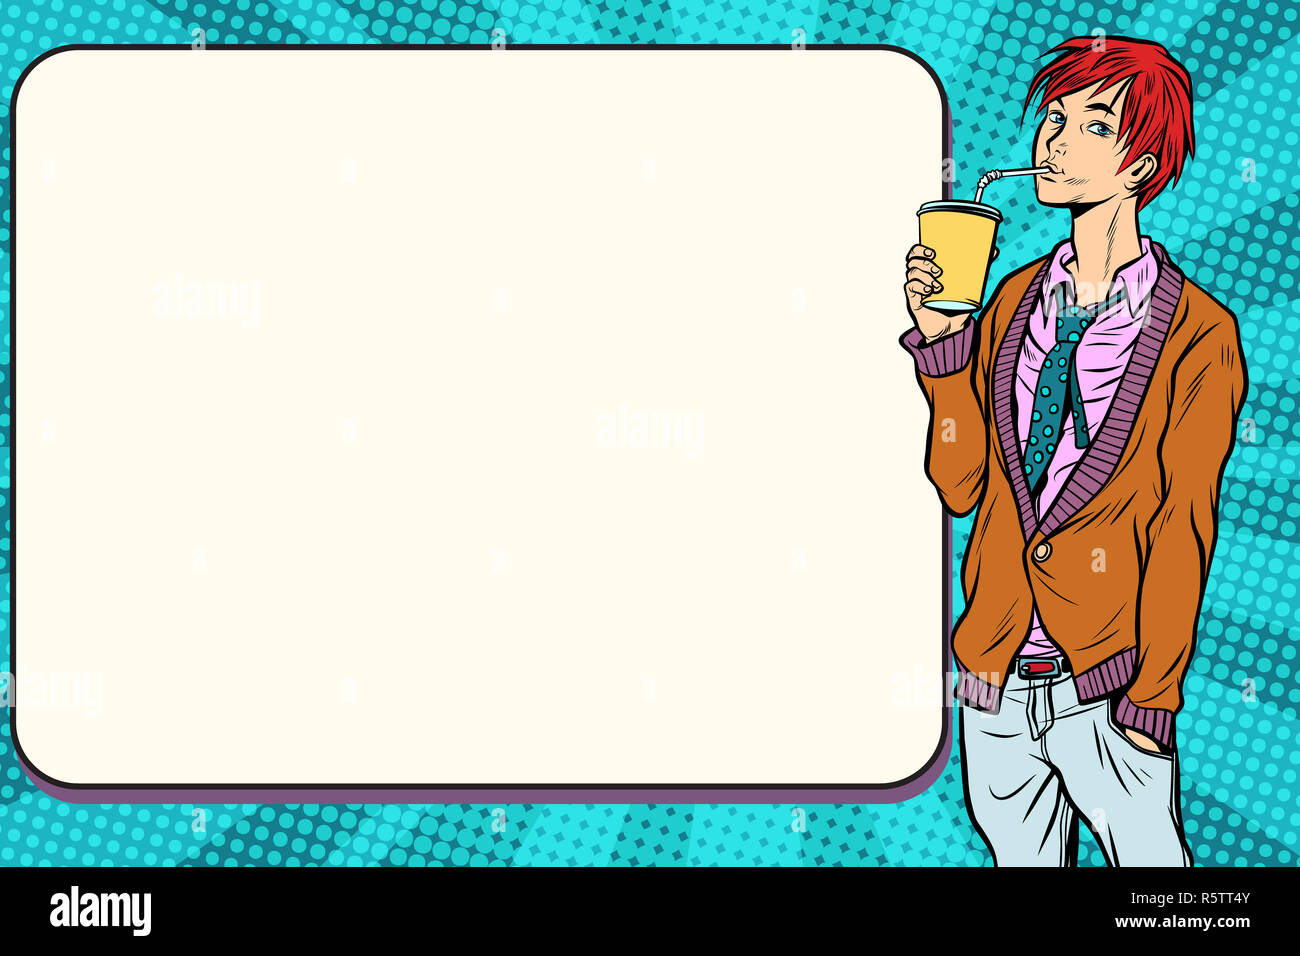 Fashionable hipster young man drinking a beverage, manga anime - Stock Image